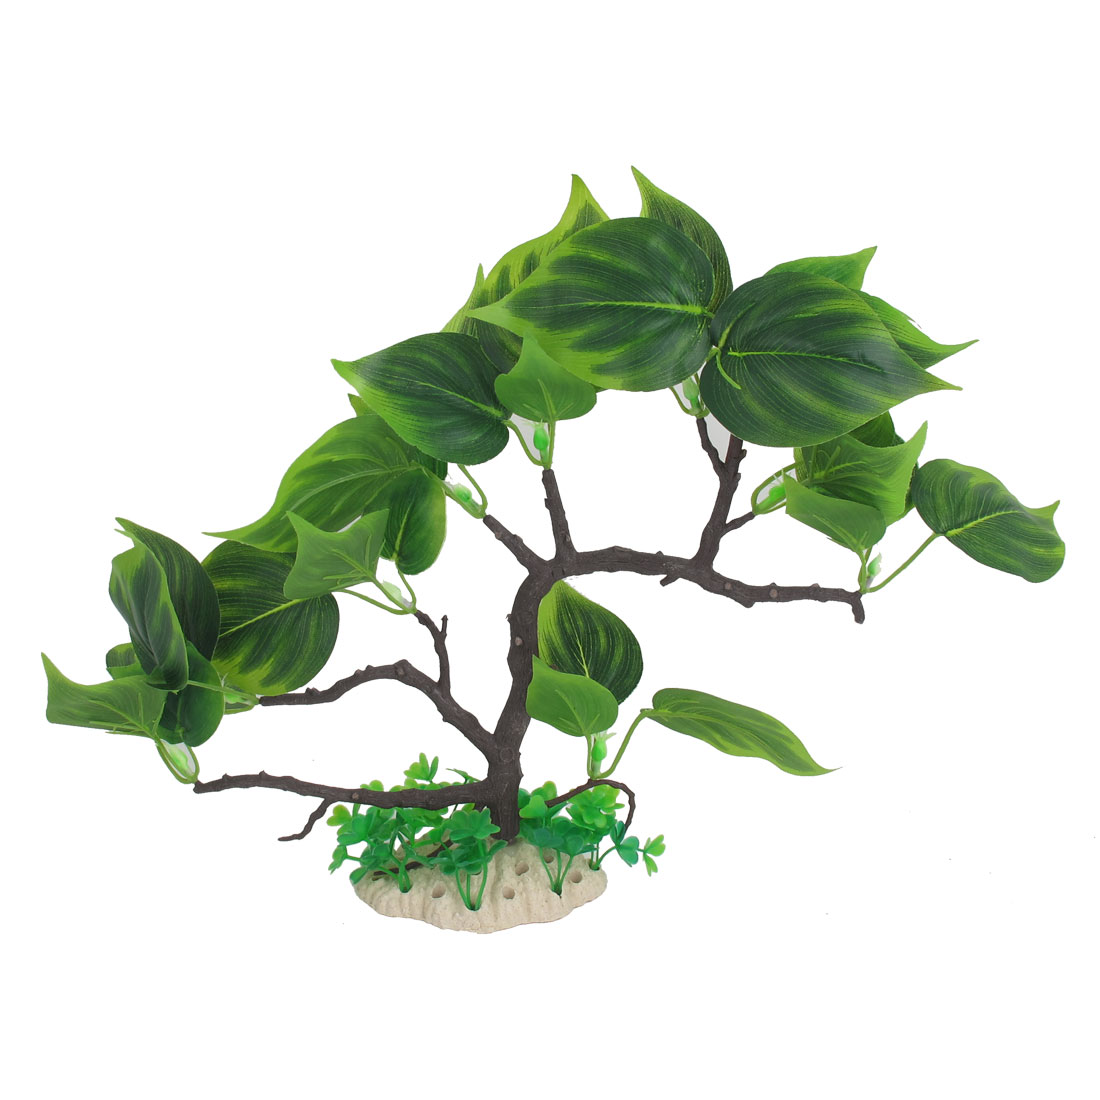 "11.9"" Height Green Plastic Tree Shaped Artificial Emulational Ornament Acquascaping Grasses Plant for Aquarium Fish Tank"